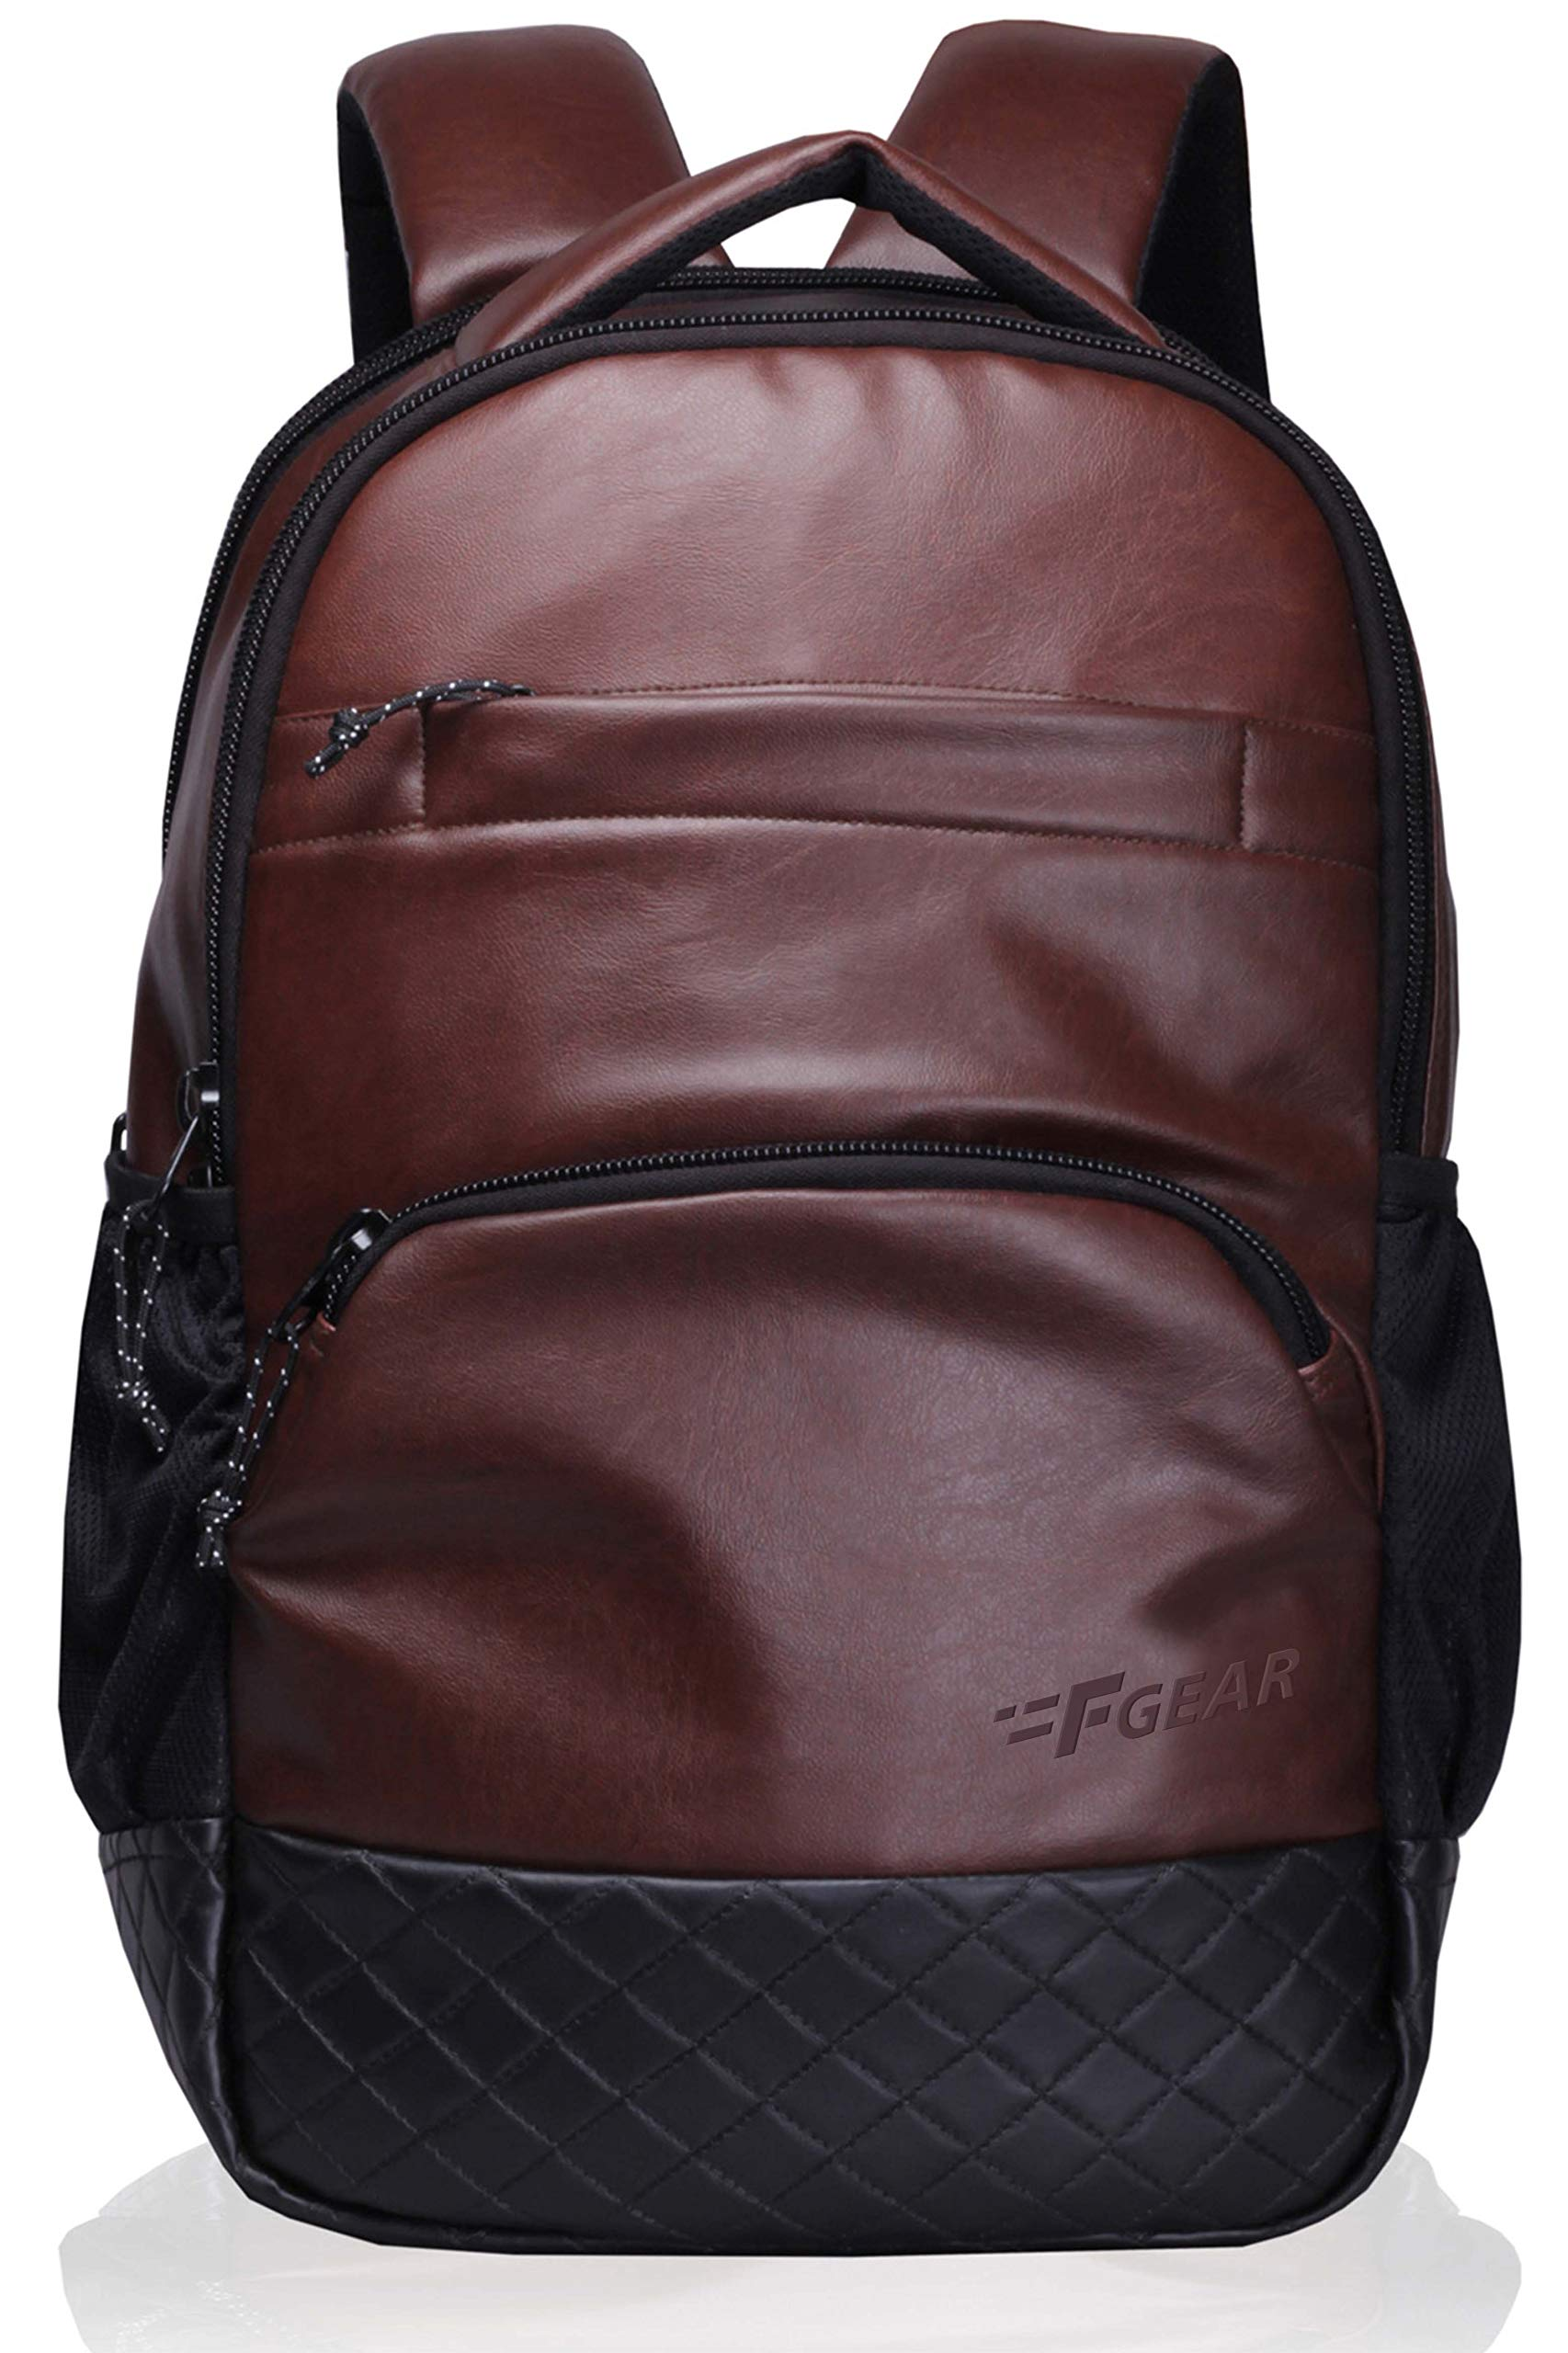 "F Gear LuXur Synthetic Leather Brown 16.5"" Laptop Backpack (2404) product image"